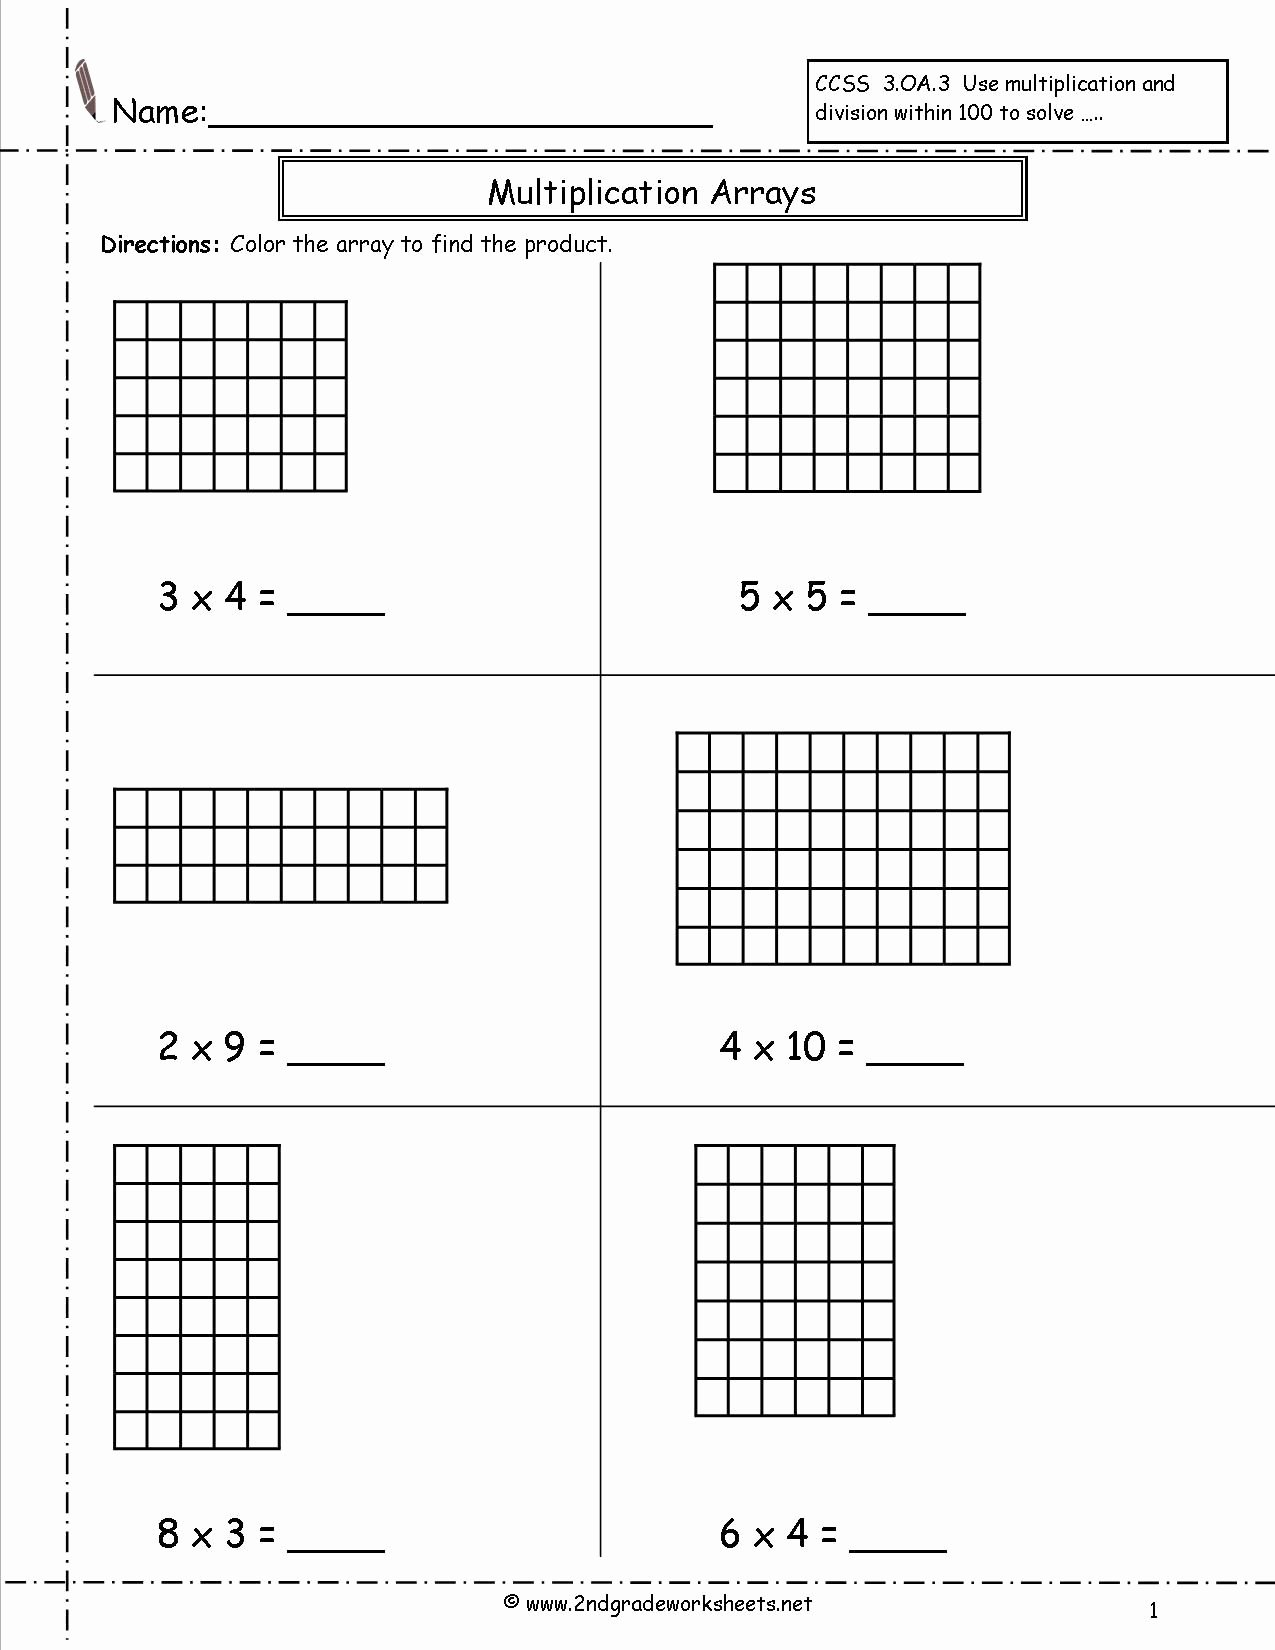 Multiplication Worksheets Using Arrays Awesome Multiplication Arrays Worksheets